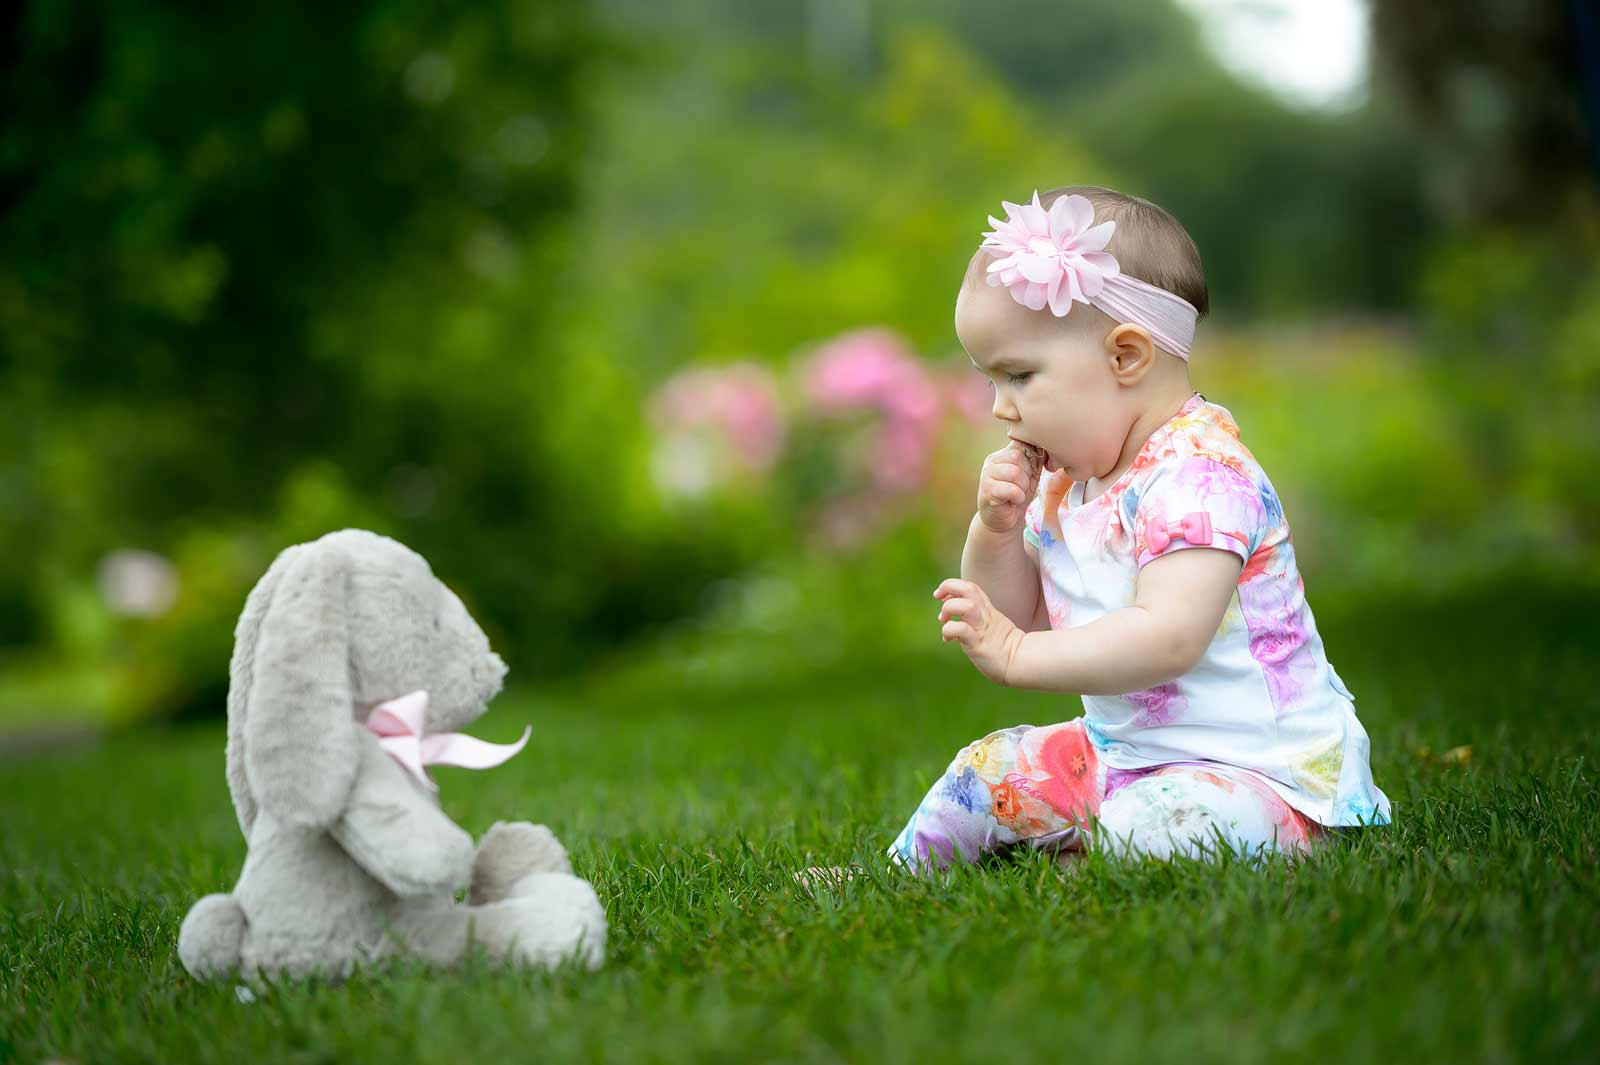 Baby sharing a snack with her bunny on the grass at the Ornamental Gardens in Ottawa